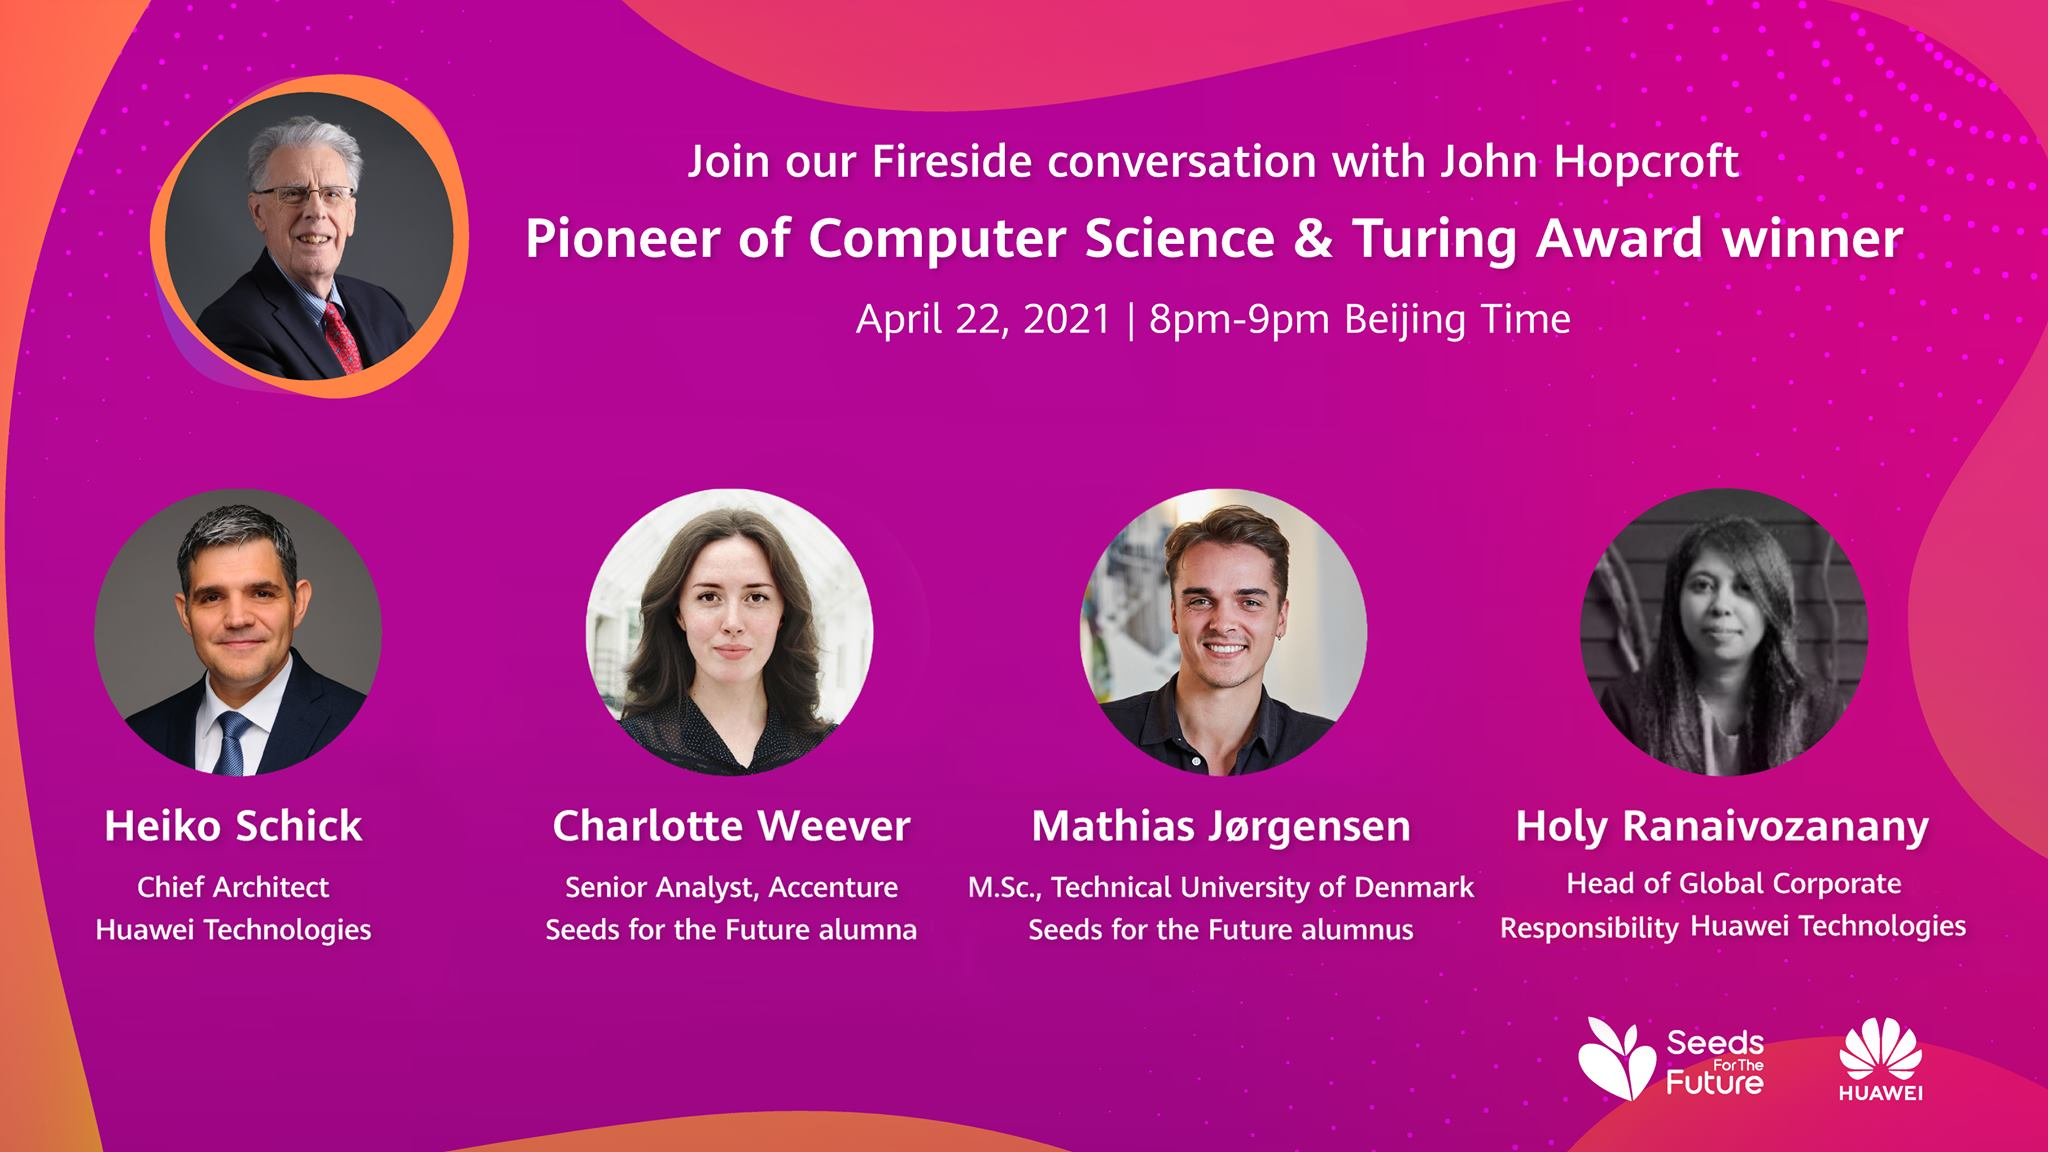 Mark your diaries — you won't want to miss our upcoming #Huawei #SeedsForTheFuture webinar! Computer science pioneer and Turing Award winner John Hopcroft will be discussing future trends and career advice alongside Huawei experts and Seeds alumni. Register now to reserve your spot!  Date: April 22, 2021